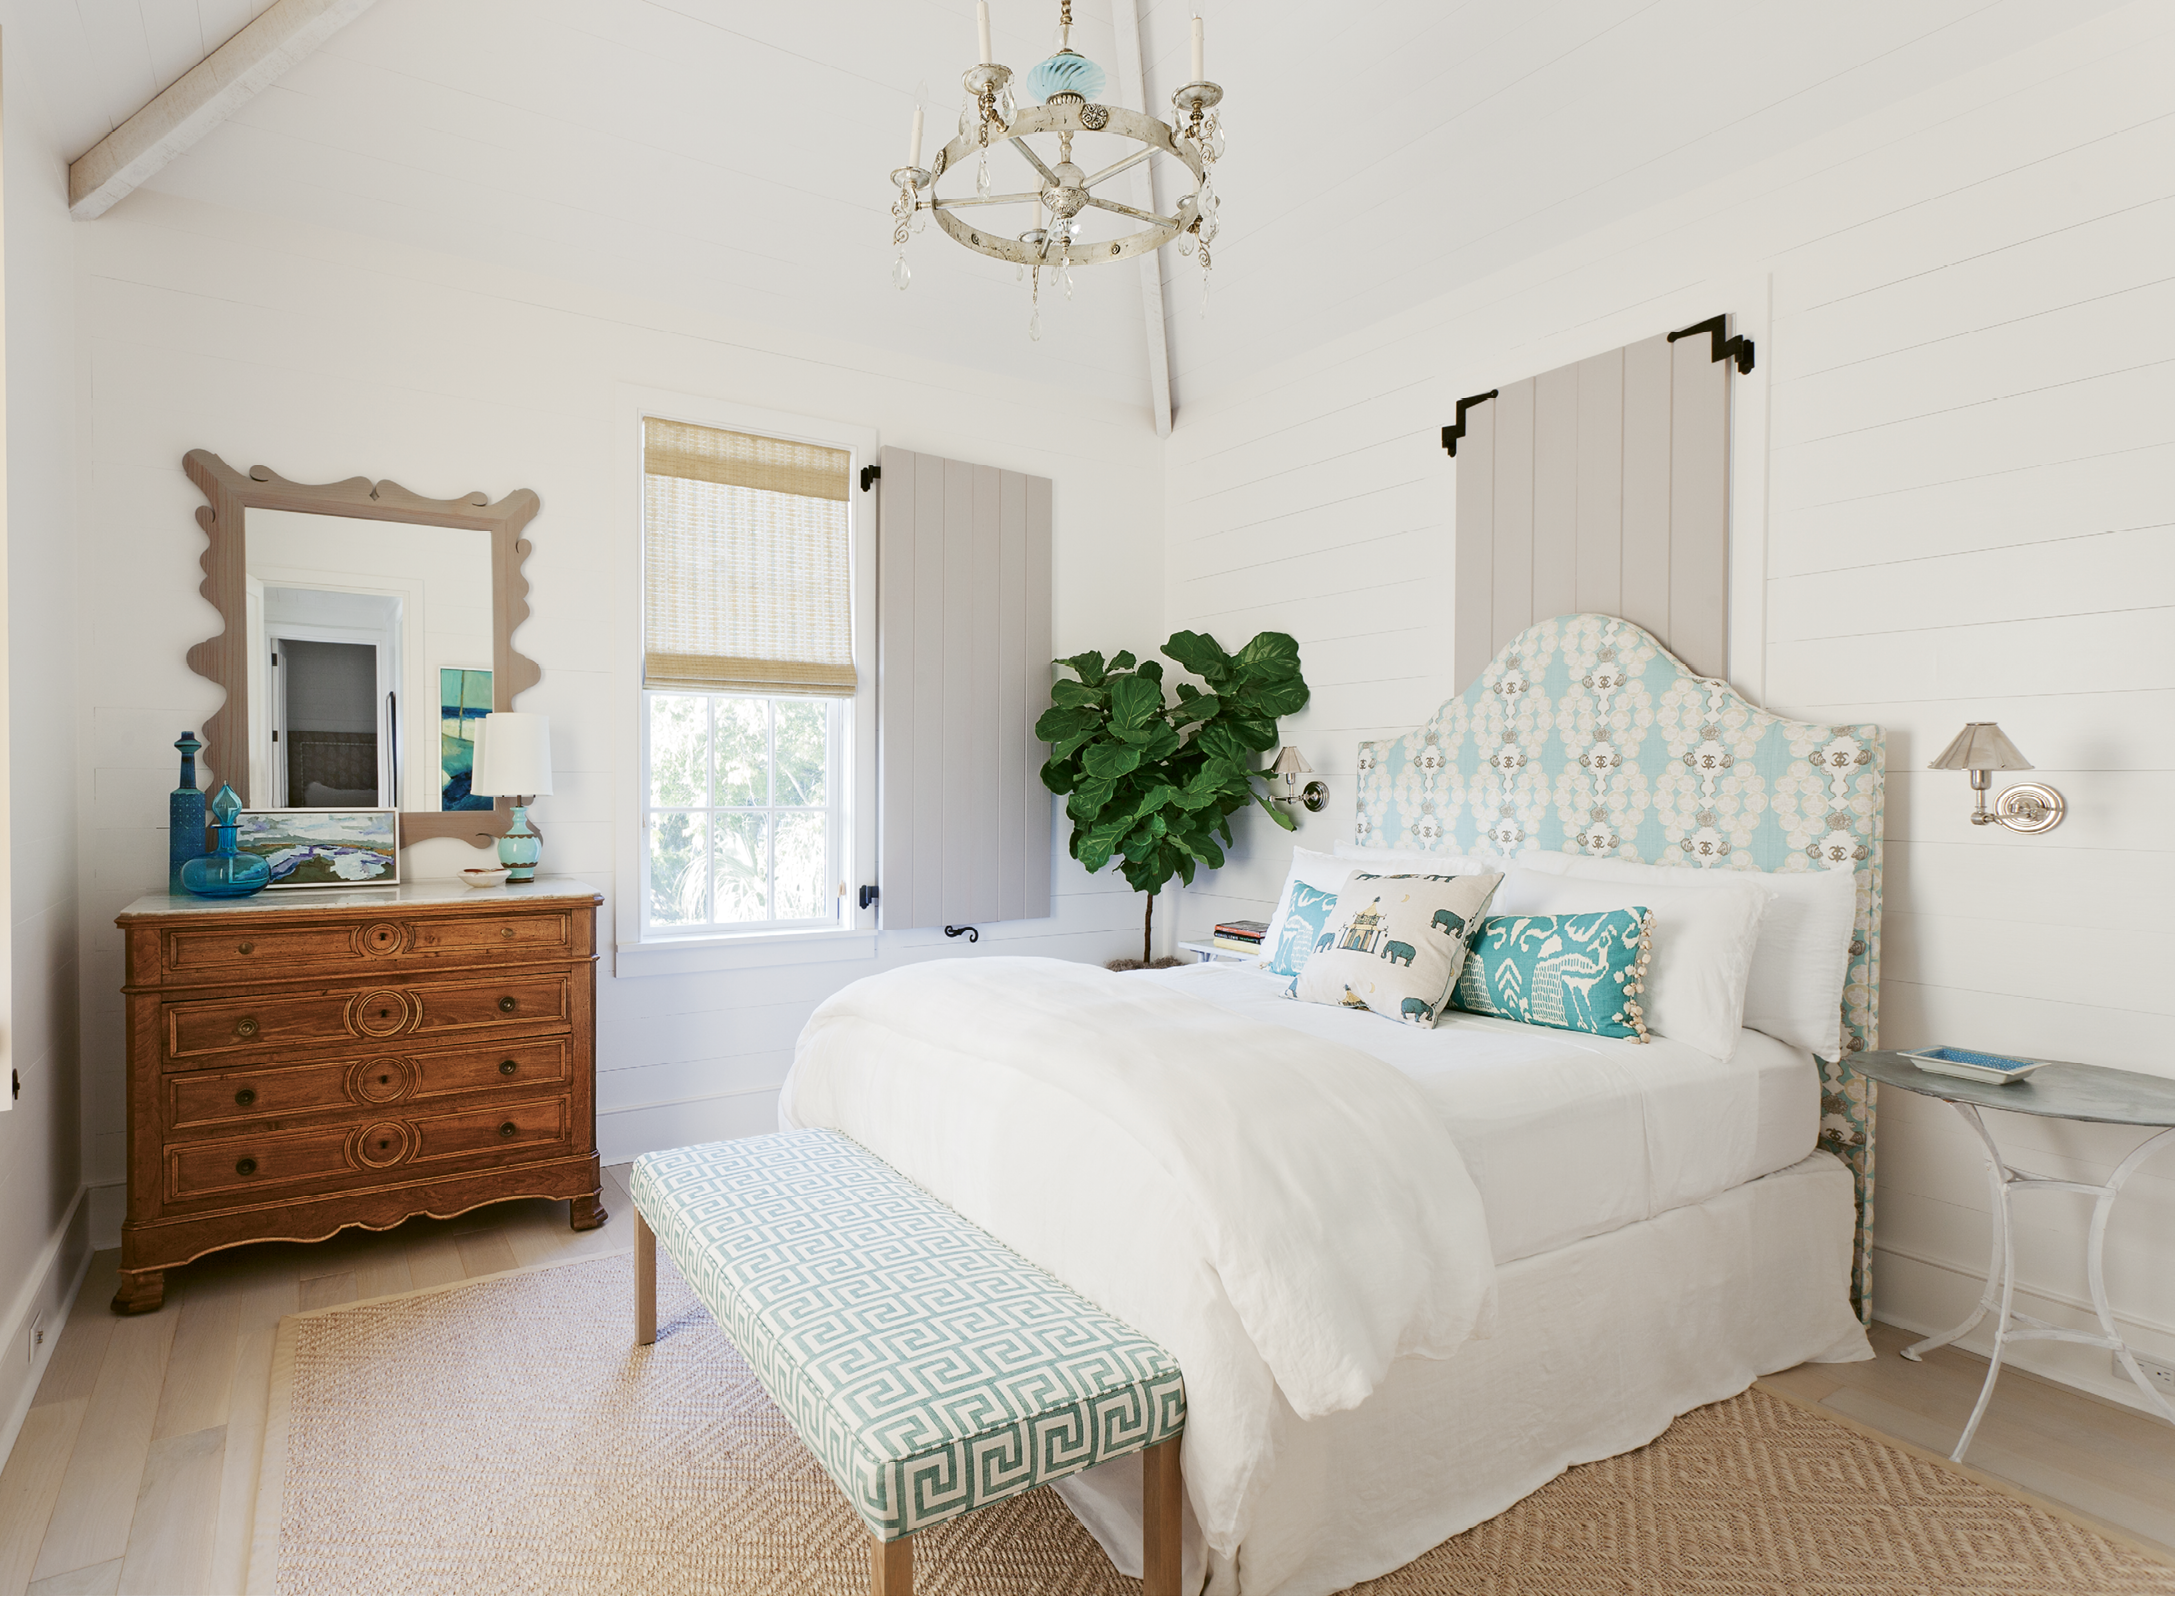 A guest bedroom, outfitted with dreamy creams and blues, proves that comfort and style can come in smaller sizes.